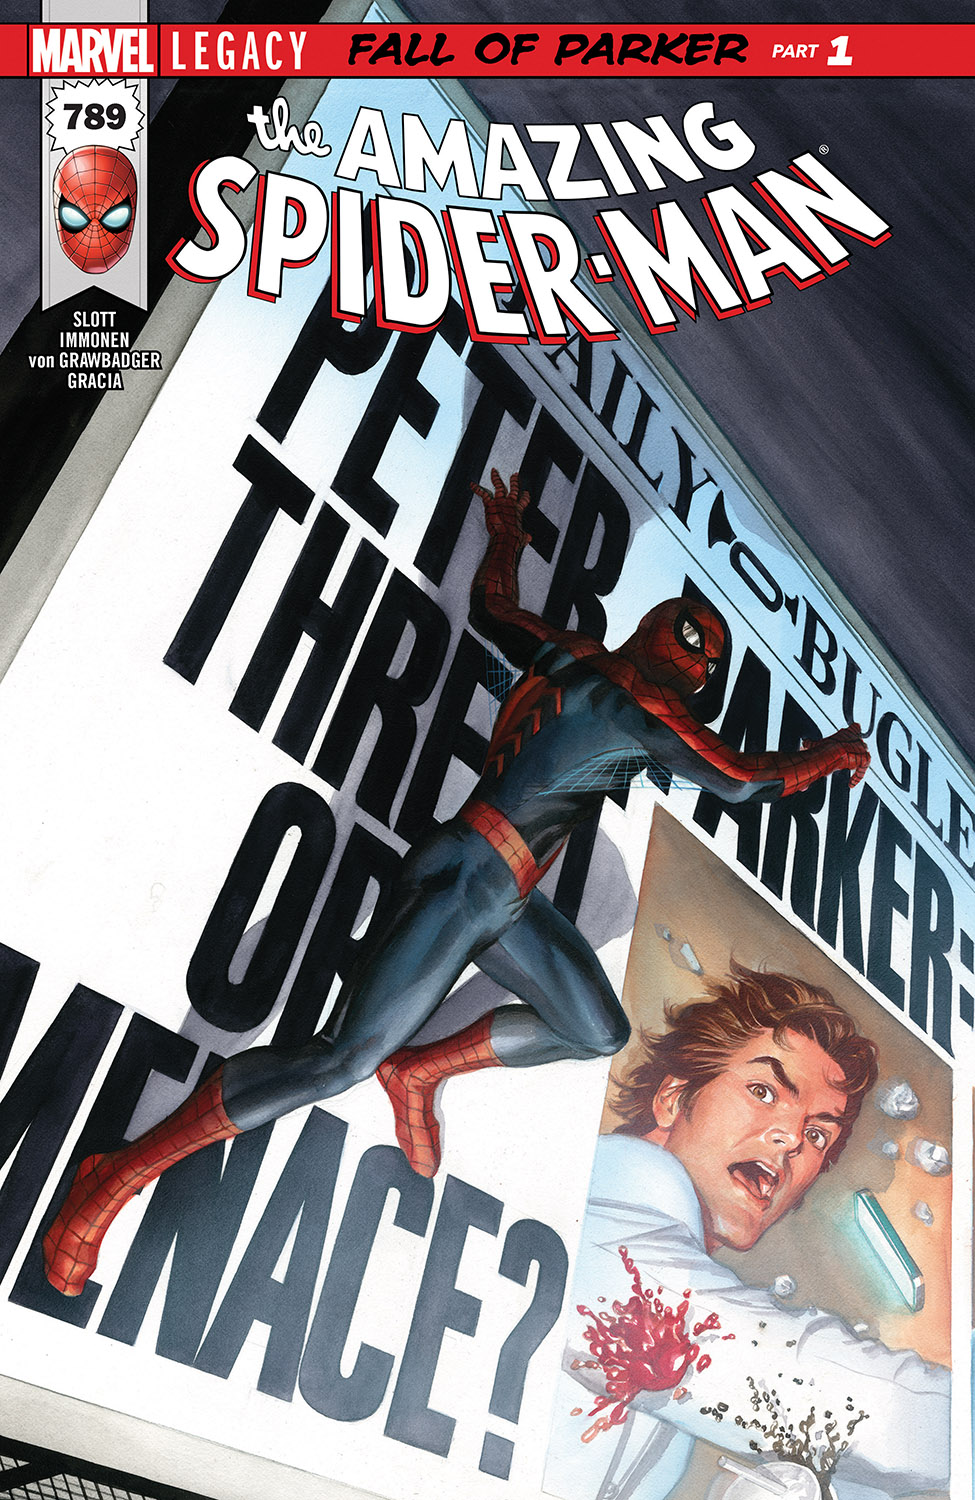 The Amazing Spider-Man (2017) #789